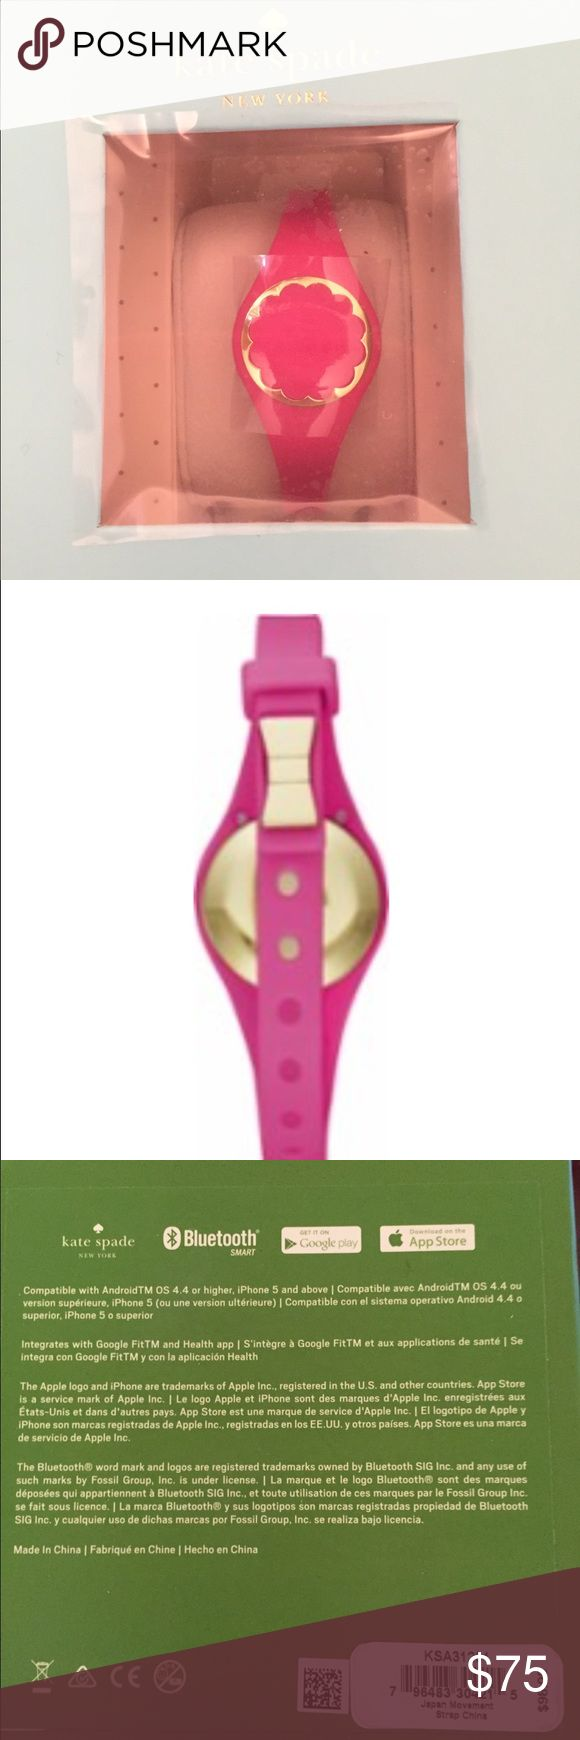 Kate Spade Activity Tracker! Compatible with AndroidTM OS 4.4 or higher and IPhone 5 or higher.  Bluetooth connectivity to Kate Spade App. NEW in a sealed box. Pink with gold scallops. kate spade Accessories Watches